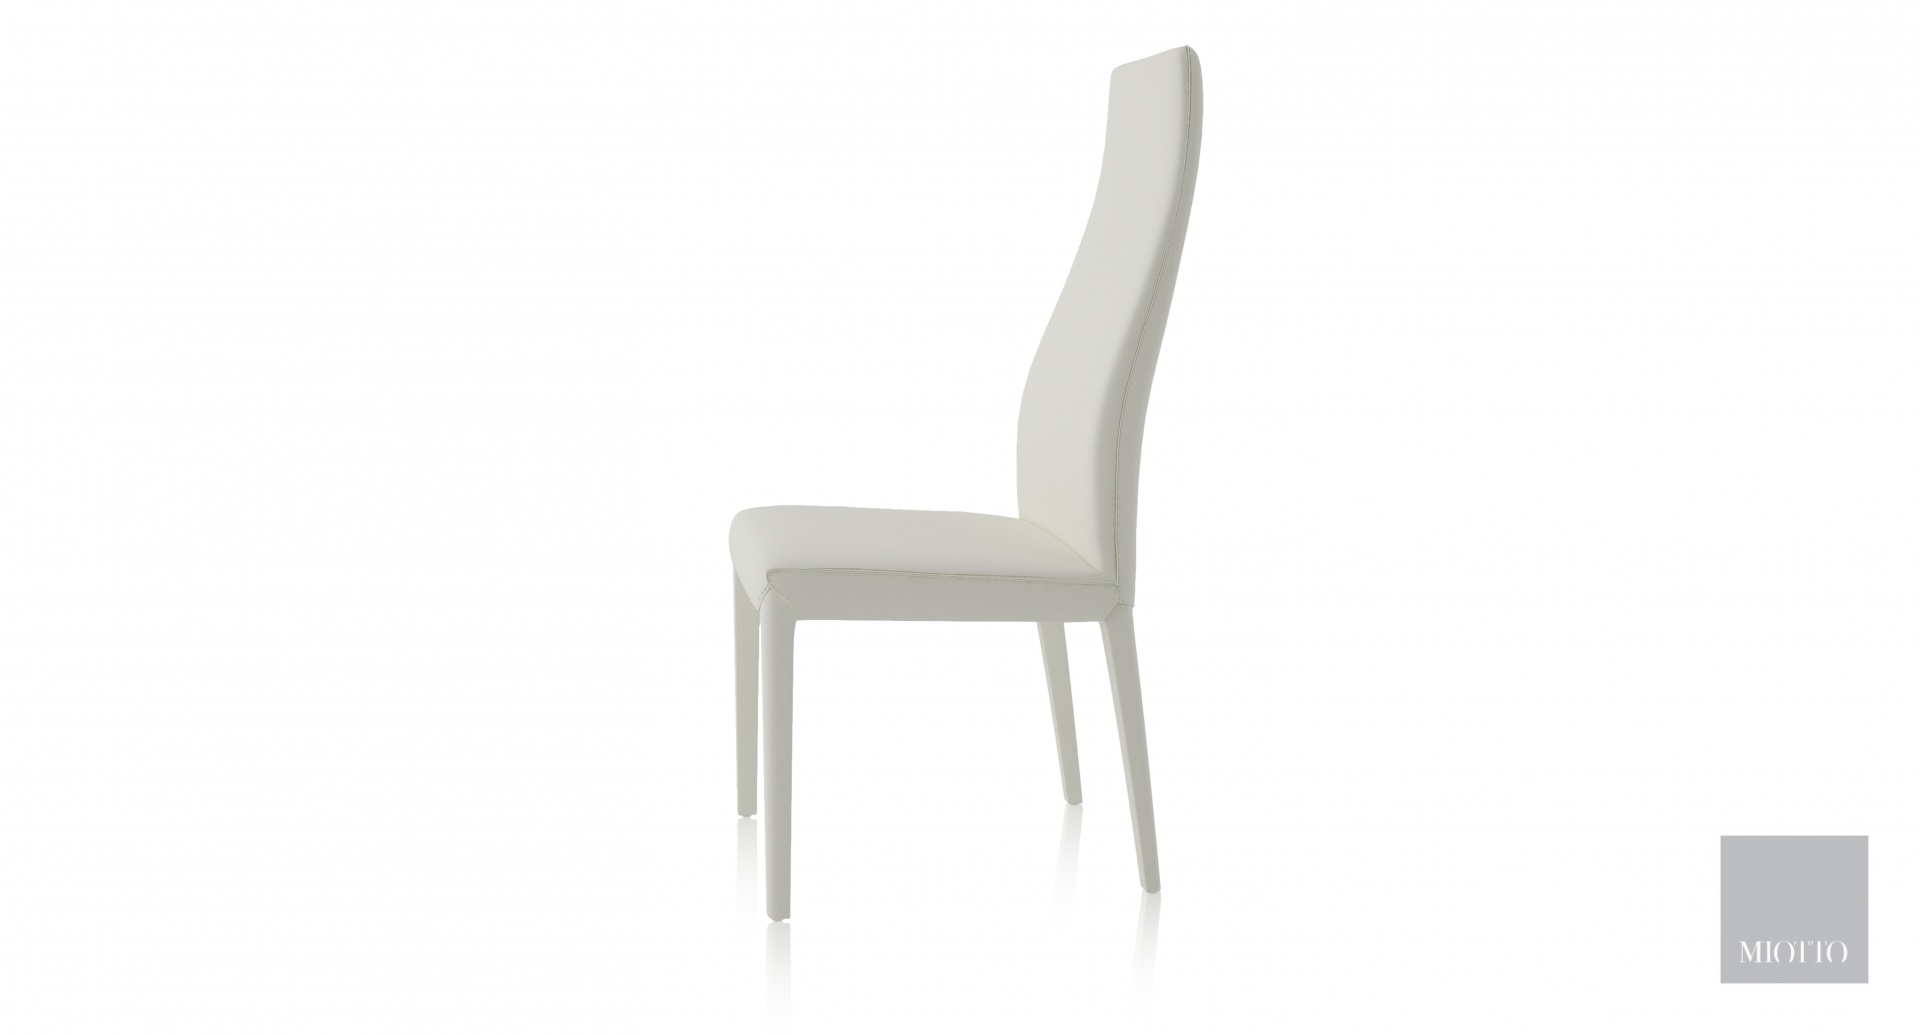 miotto_quinto DC white T miotto dining chair furniture